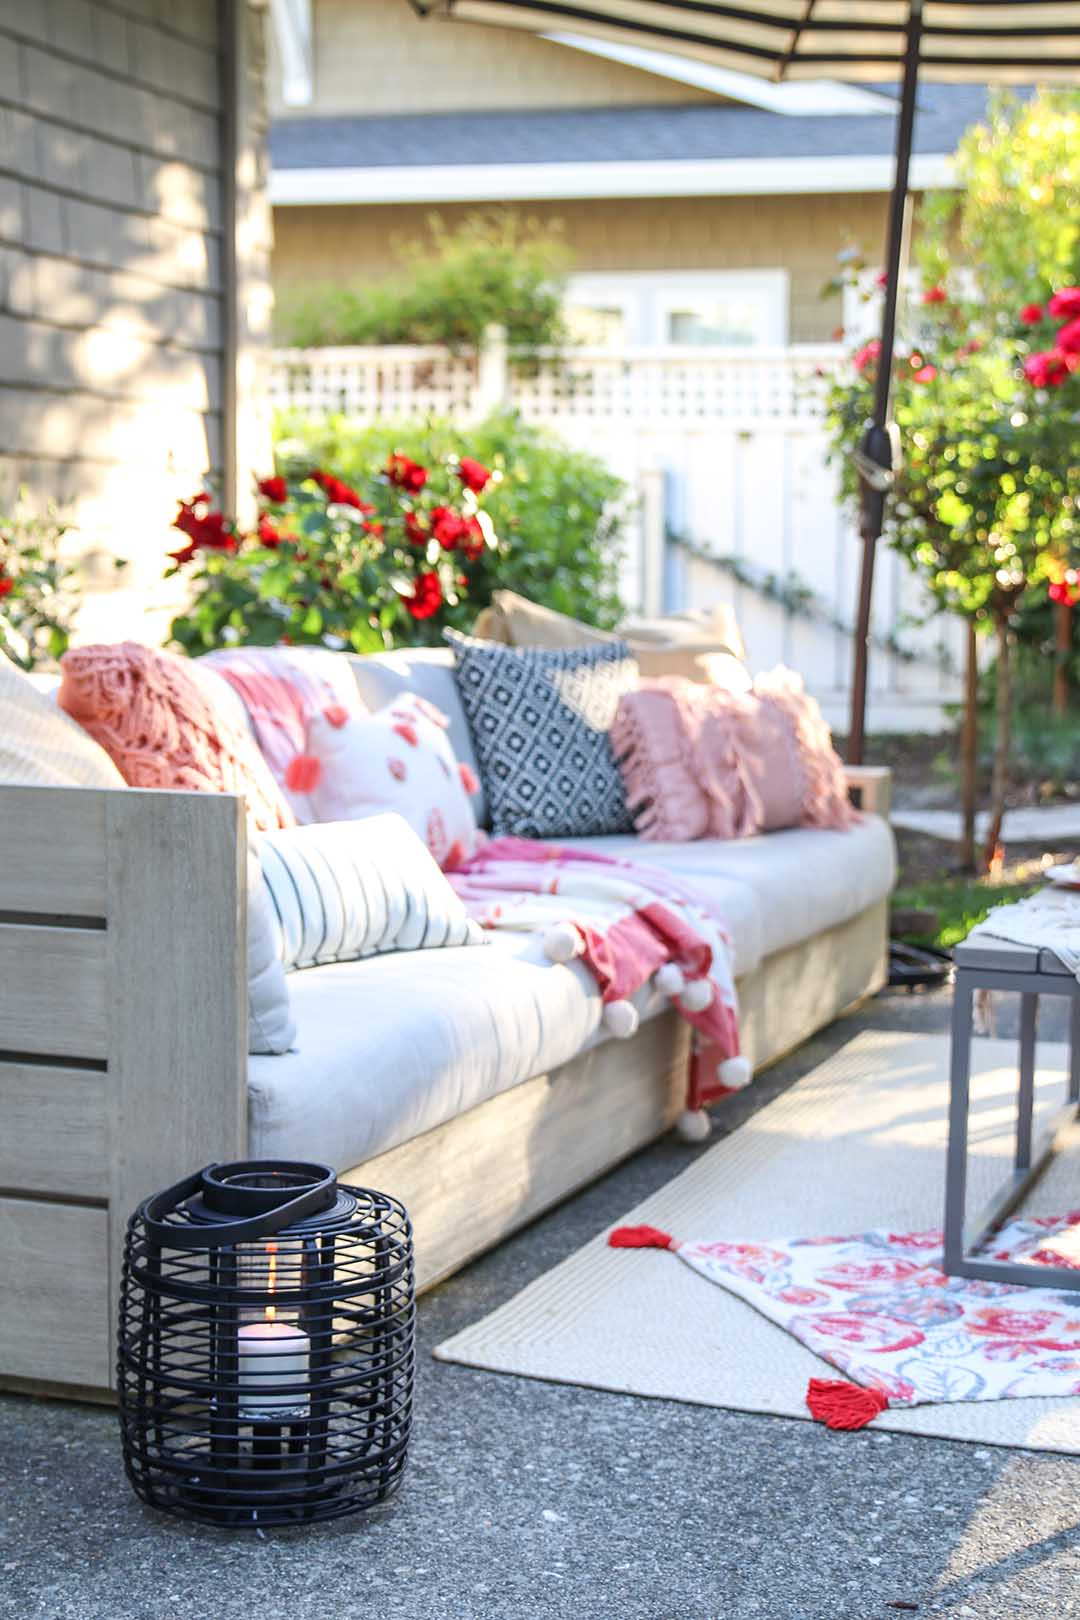 Patio Decorating Ideas: 7 Simple Summer Updates - Modern Glam on Basic Patio Ideas id=63764